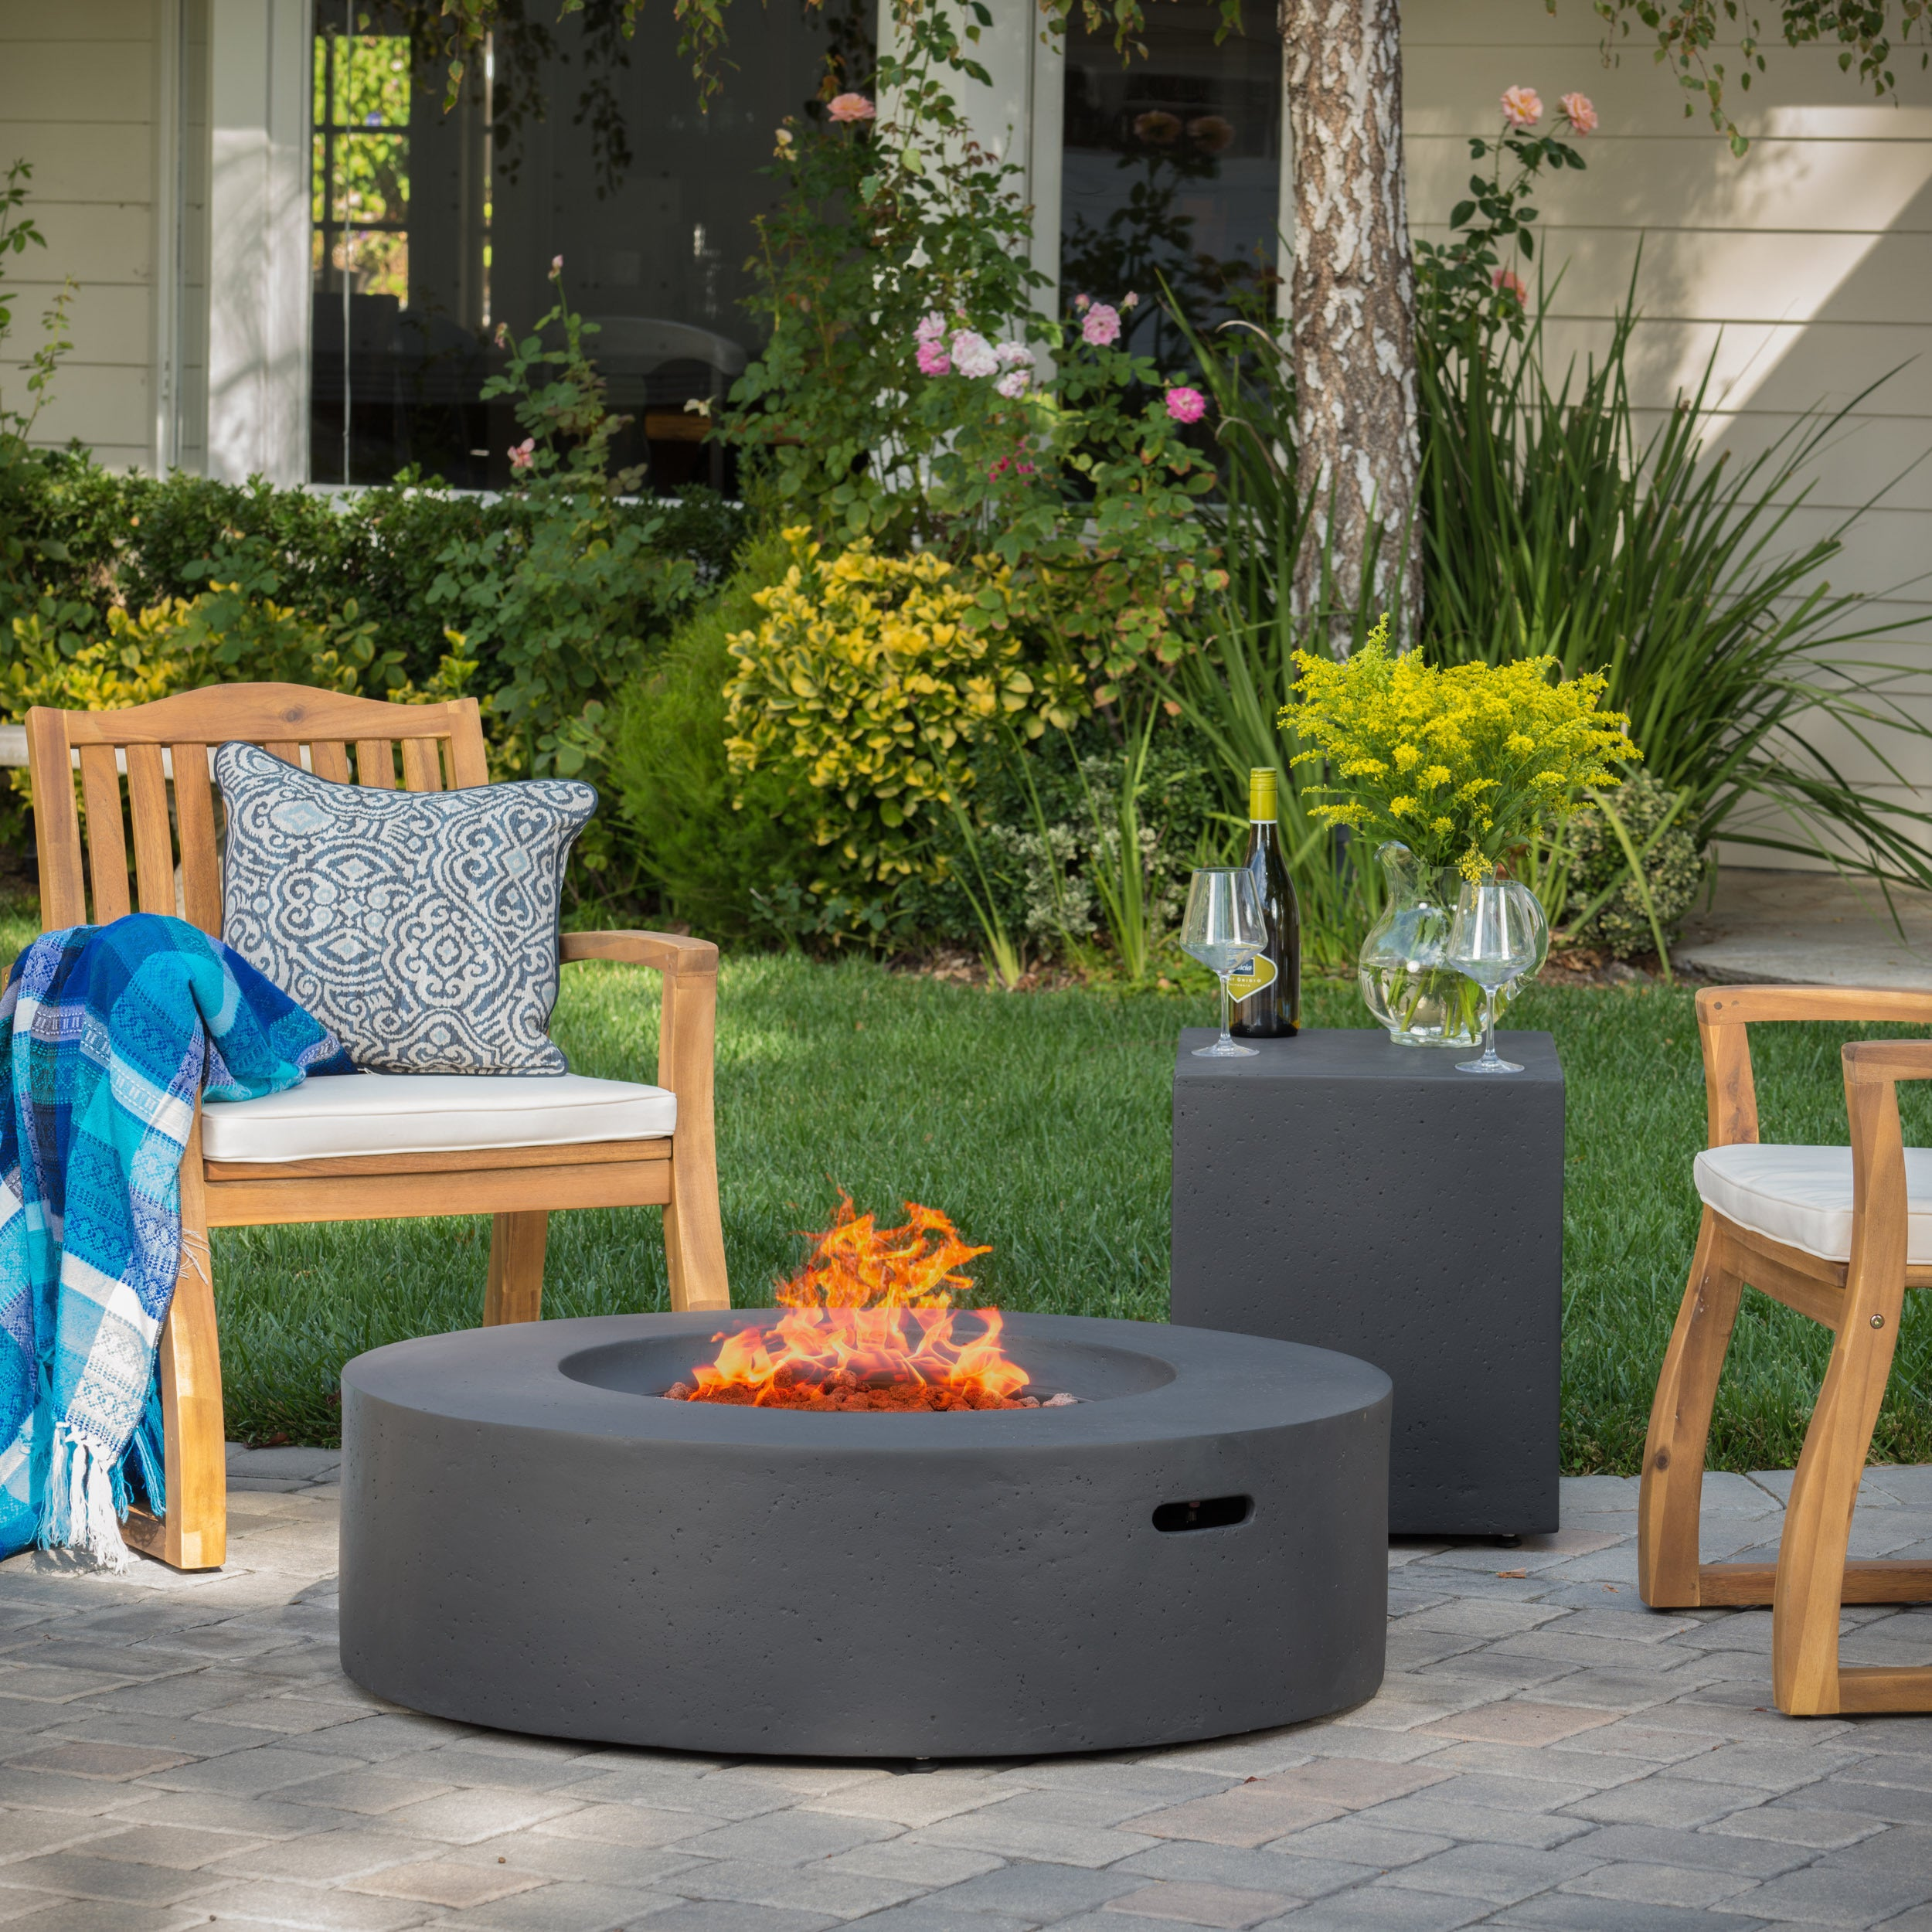 shop santos outdoor circular propane fire pit table with tank holder